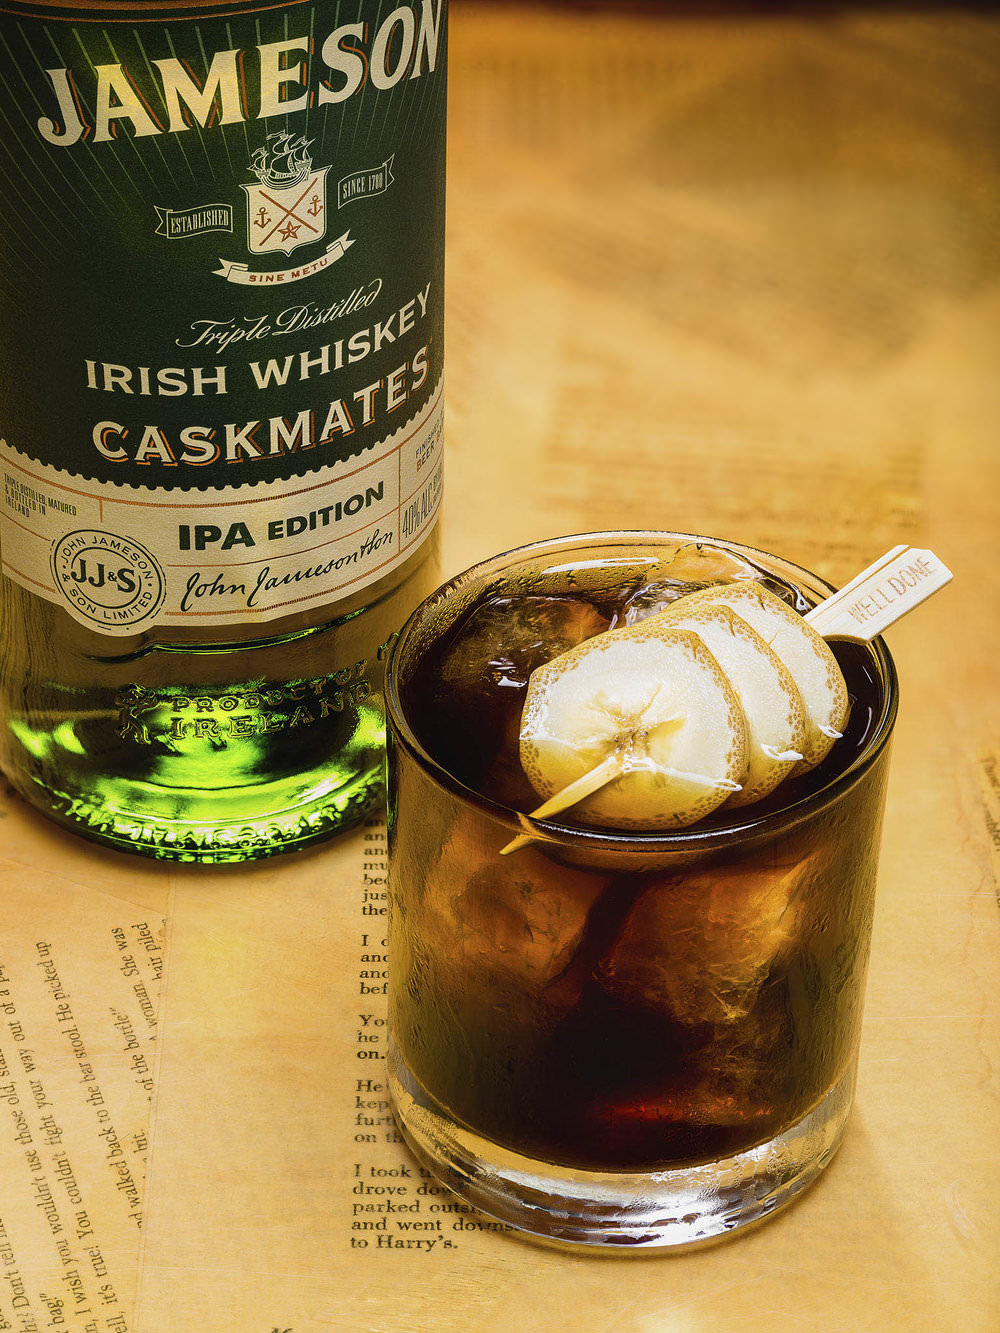 jameson-irish-whiskey-photography-1.jpg